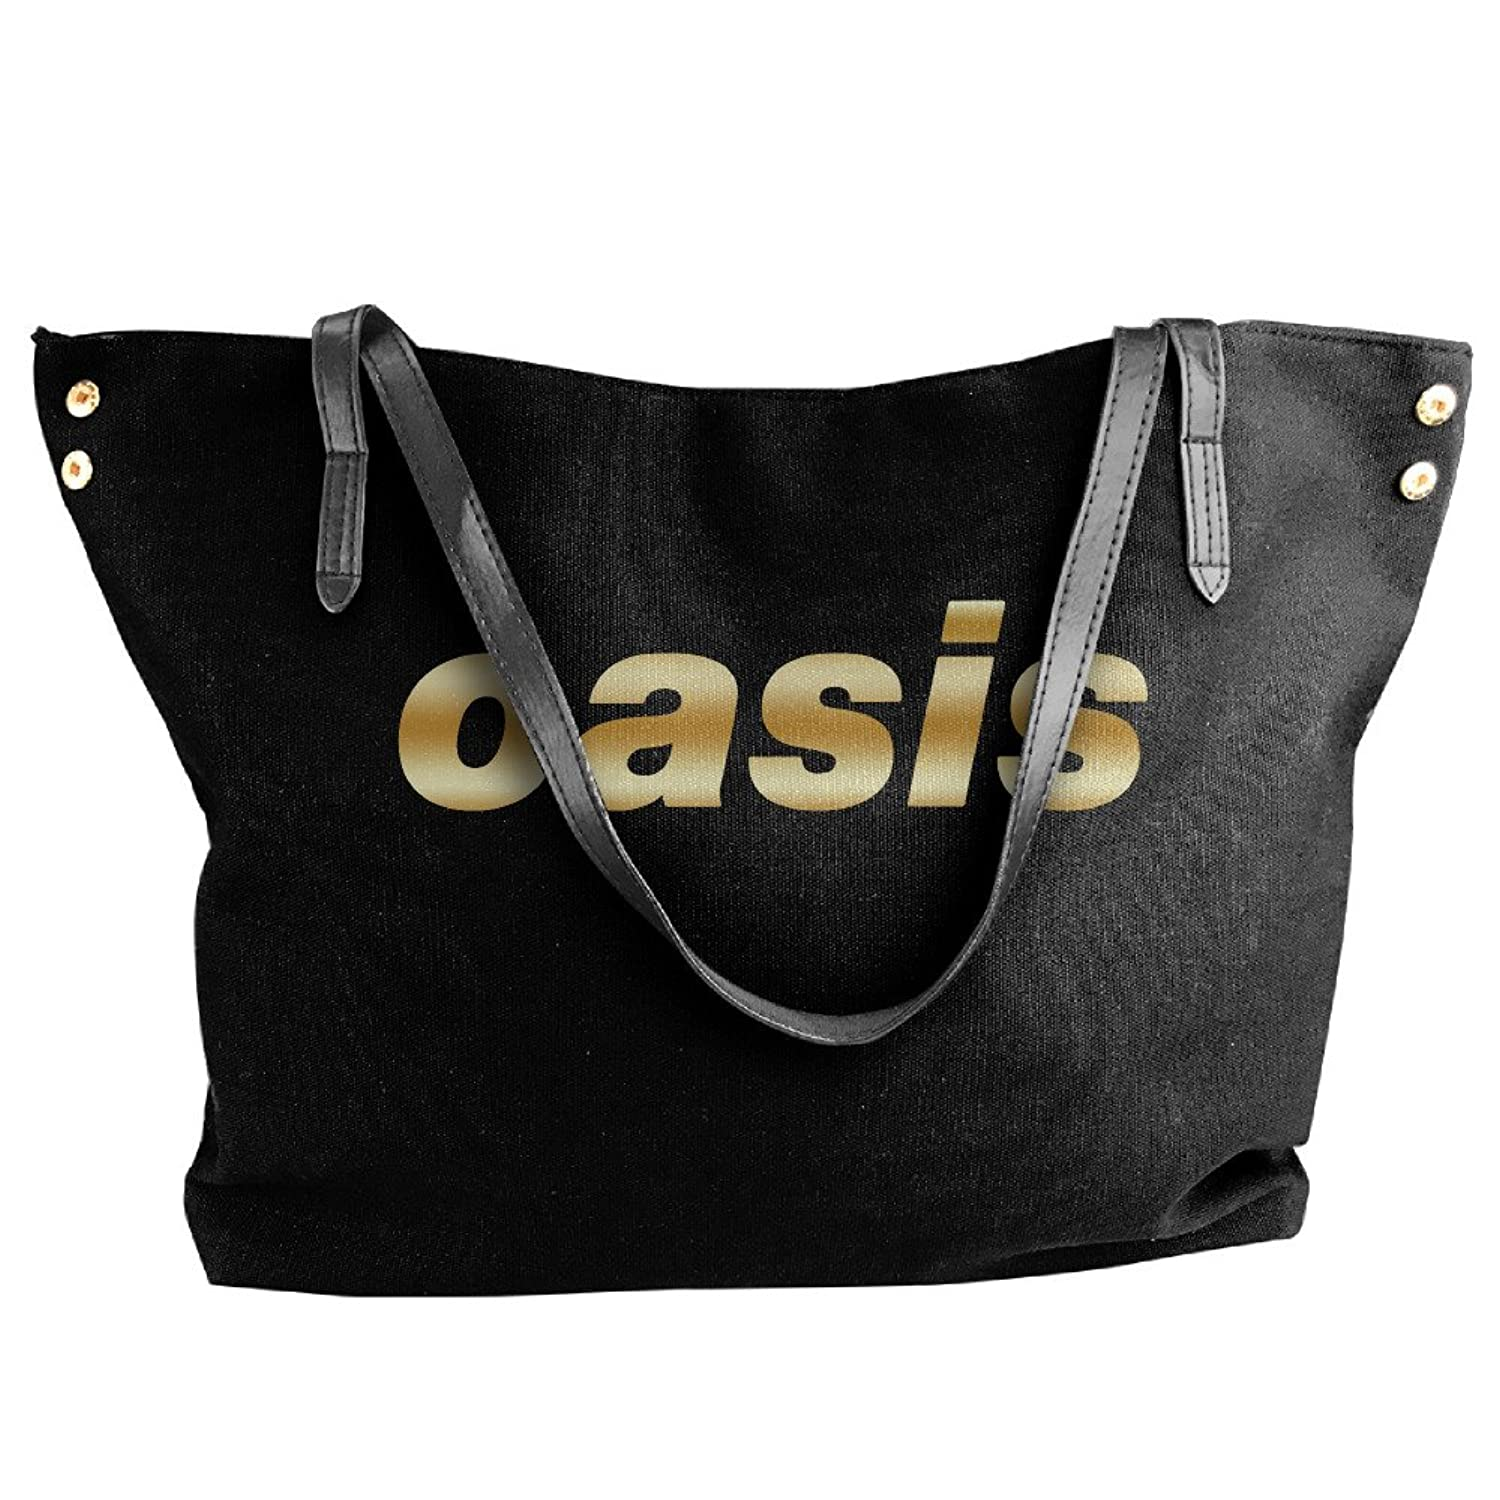 Oasis Band Gold Logo Women Shoulder Bags